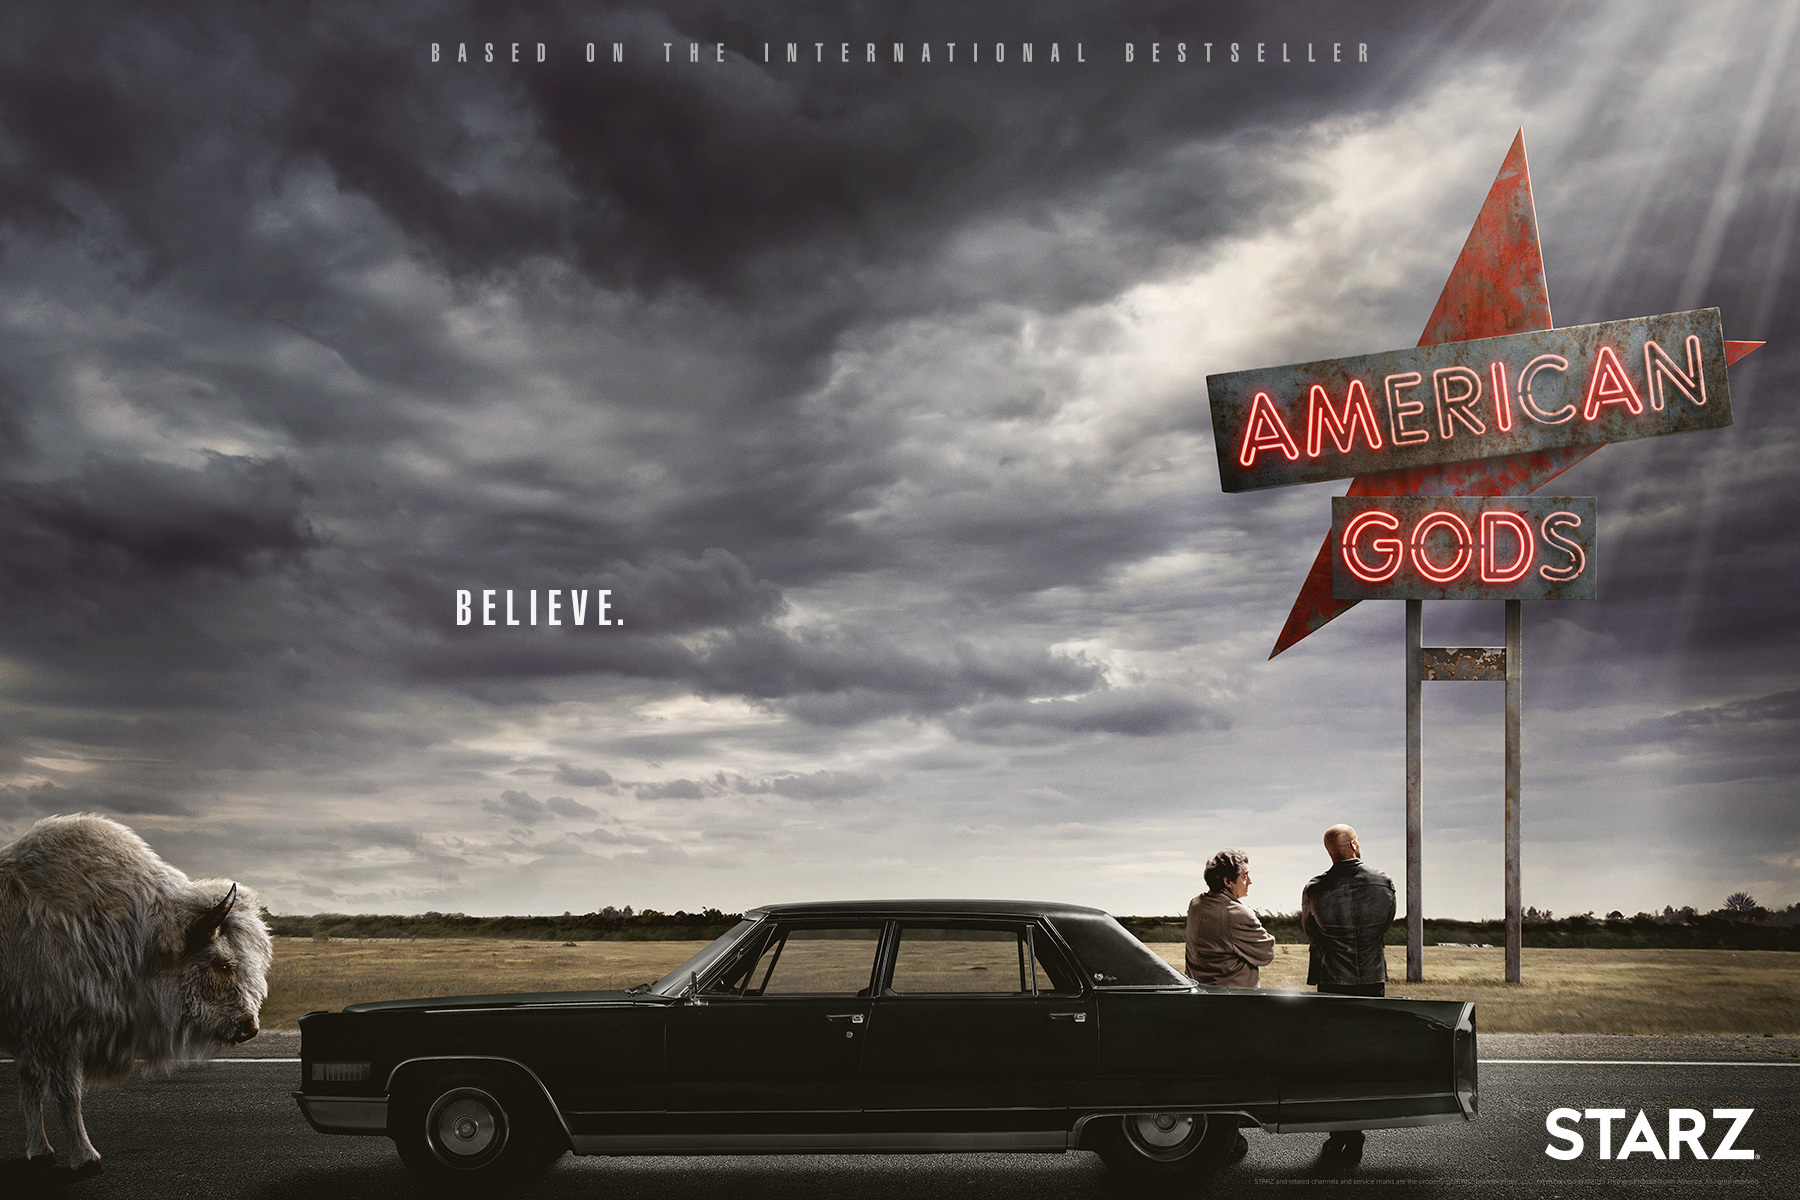 Also released on Thursday was the key art for the STARZ series, 'American Gods.'